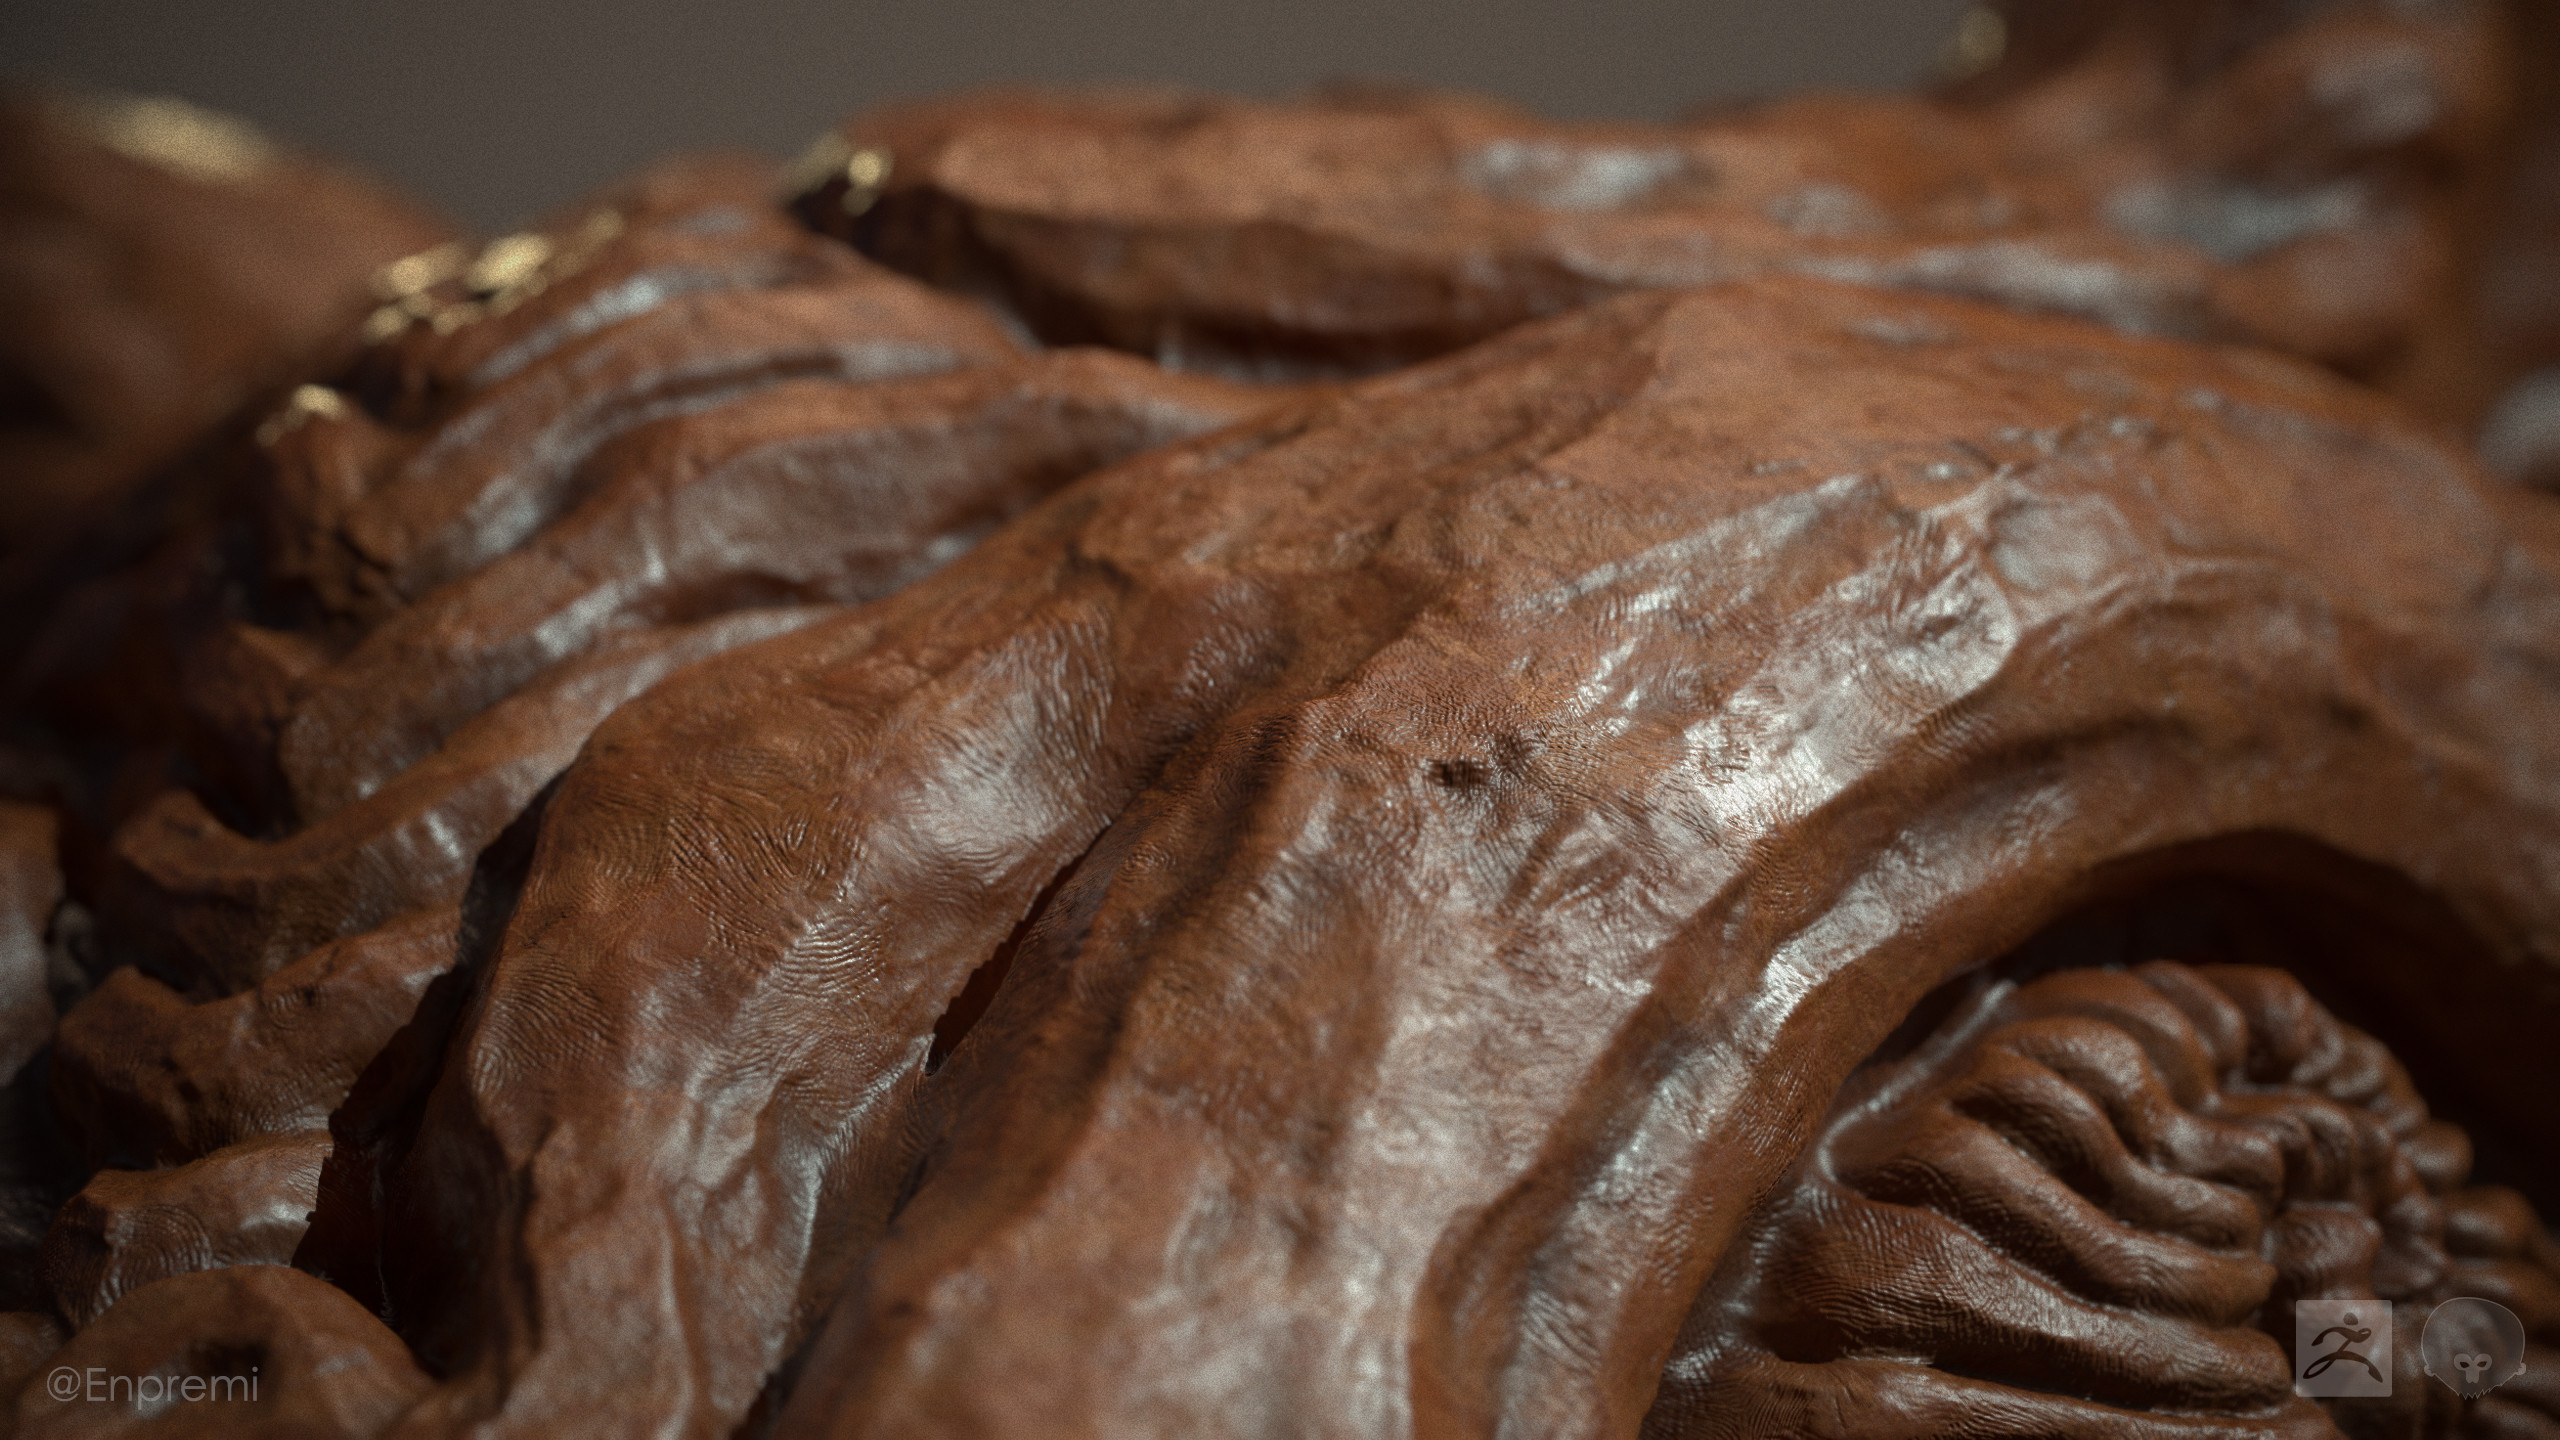 Main material is clay with some small bumps in normals and roughness variation. Detail normal has fine fingerprint patterns.